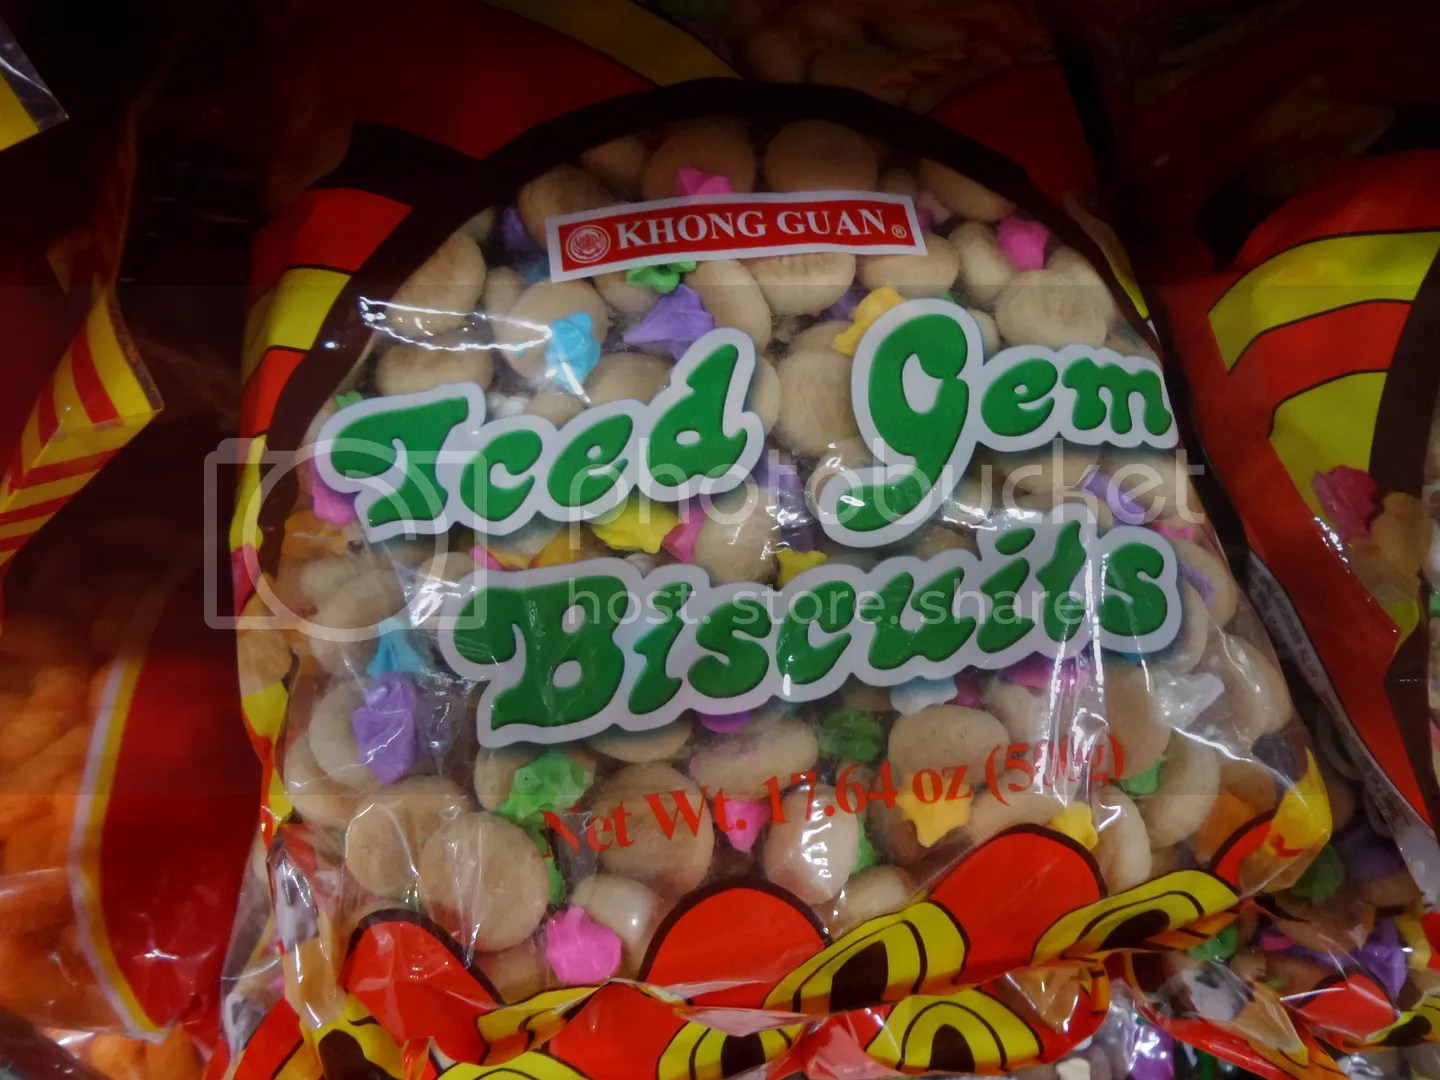 Iced Gem Biscuits!